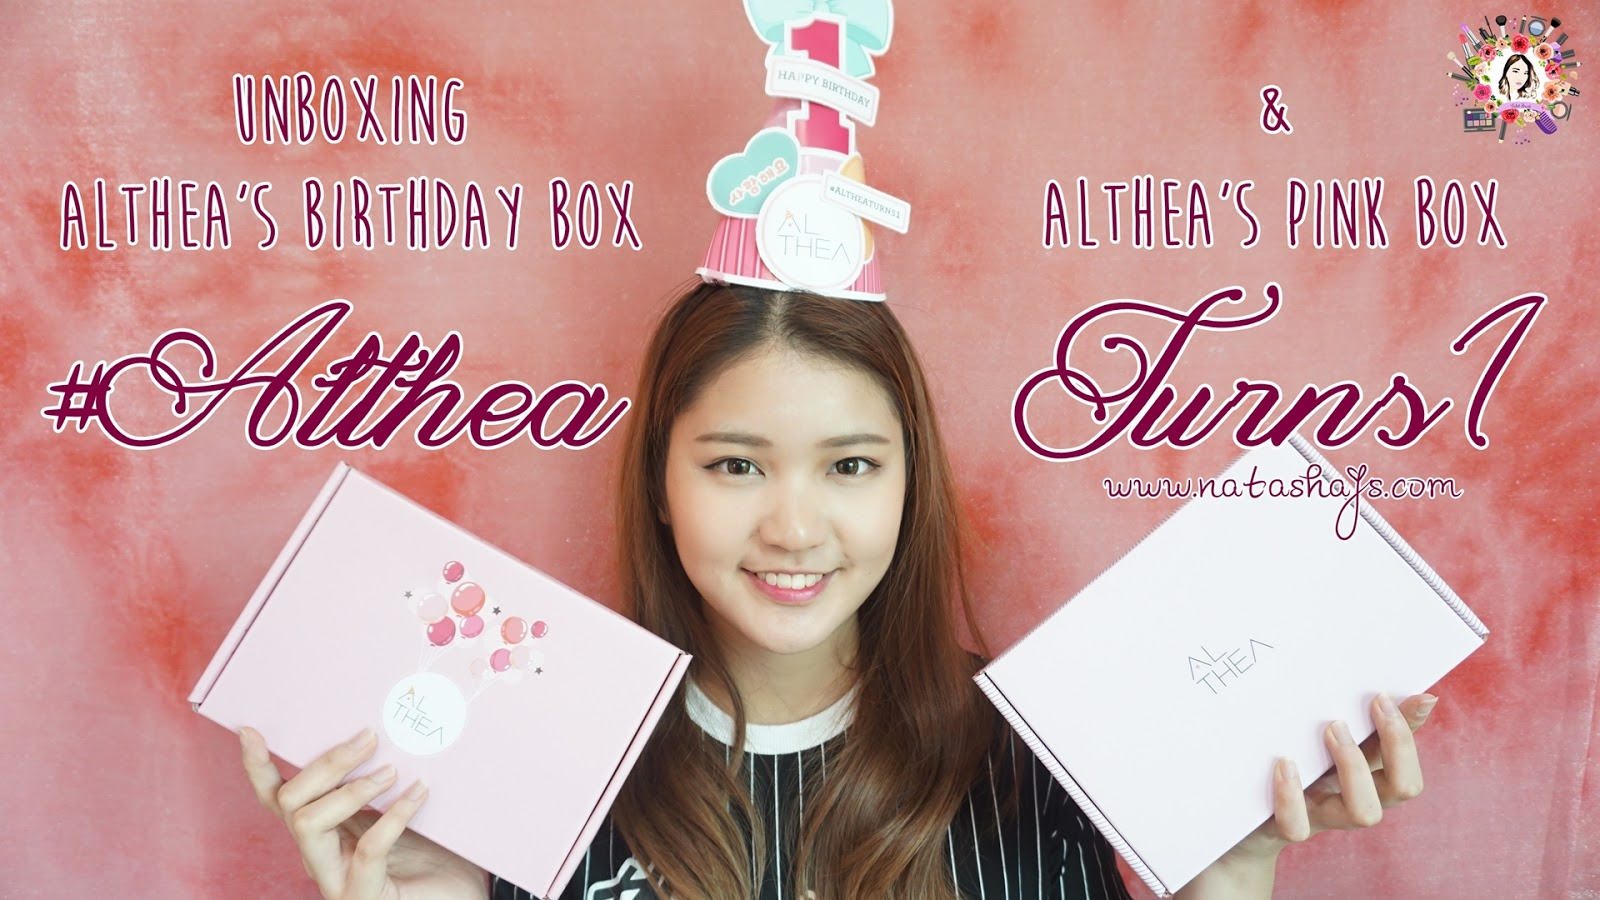 althea-birthday-indonesia-altheaturns1-pink-box-birthday-box-unboxing